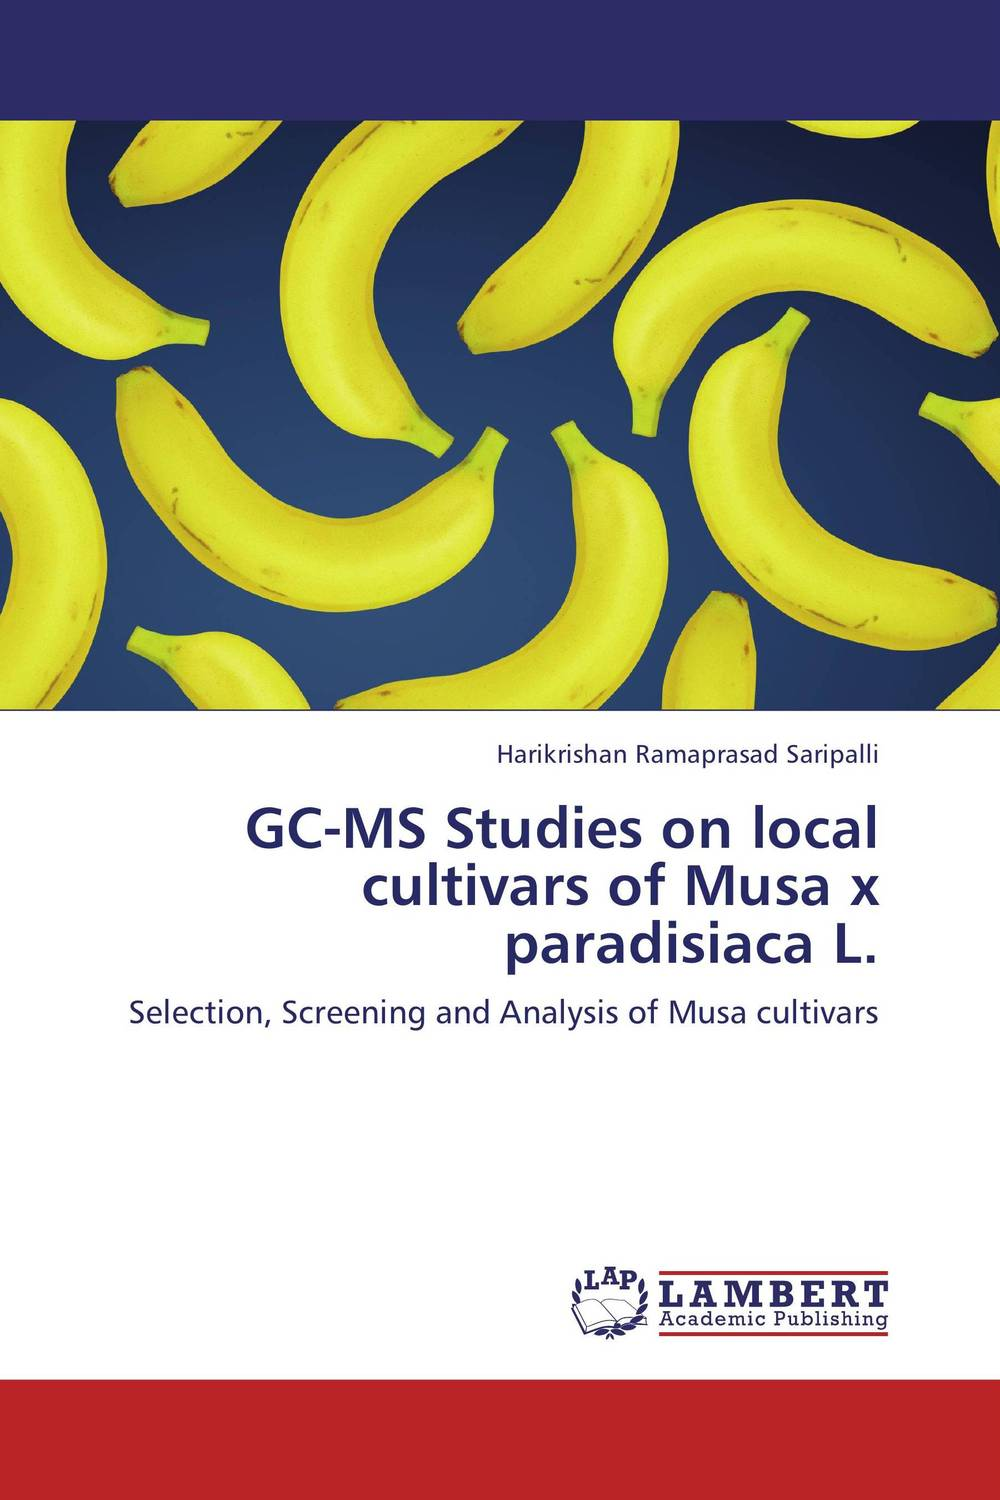 GC-MS Studies on local cultivars of Musa x paradisiaca L. studies on the bioactive constituents of lawsonia alba henna